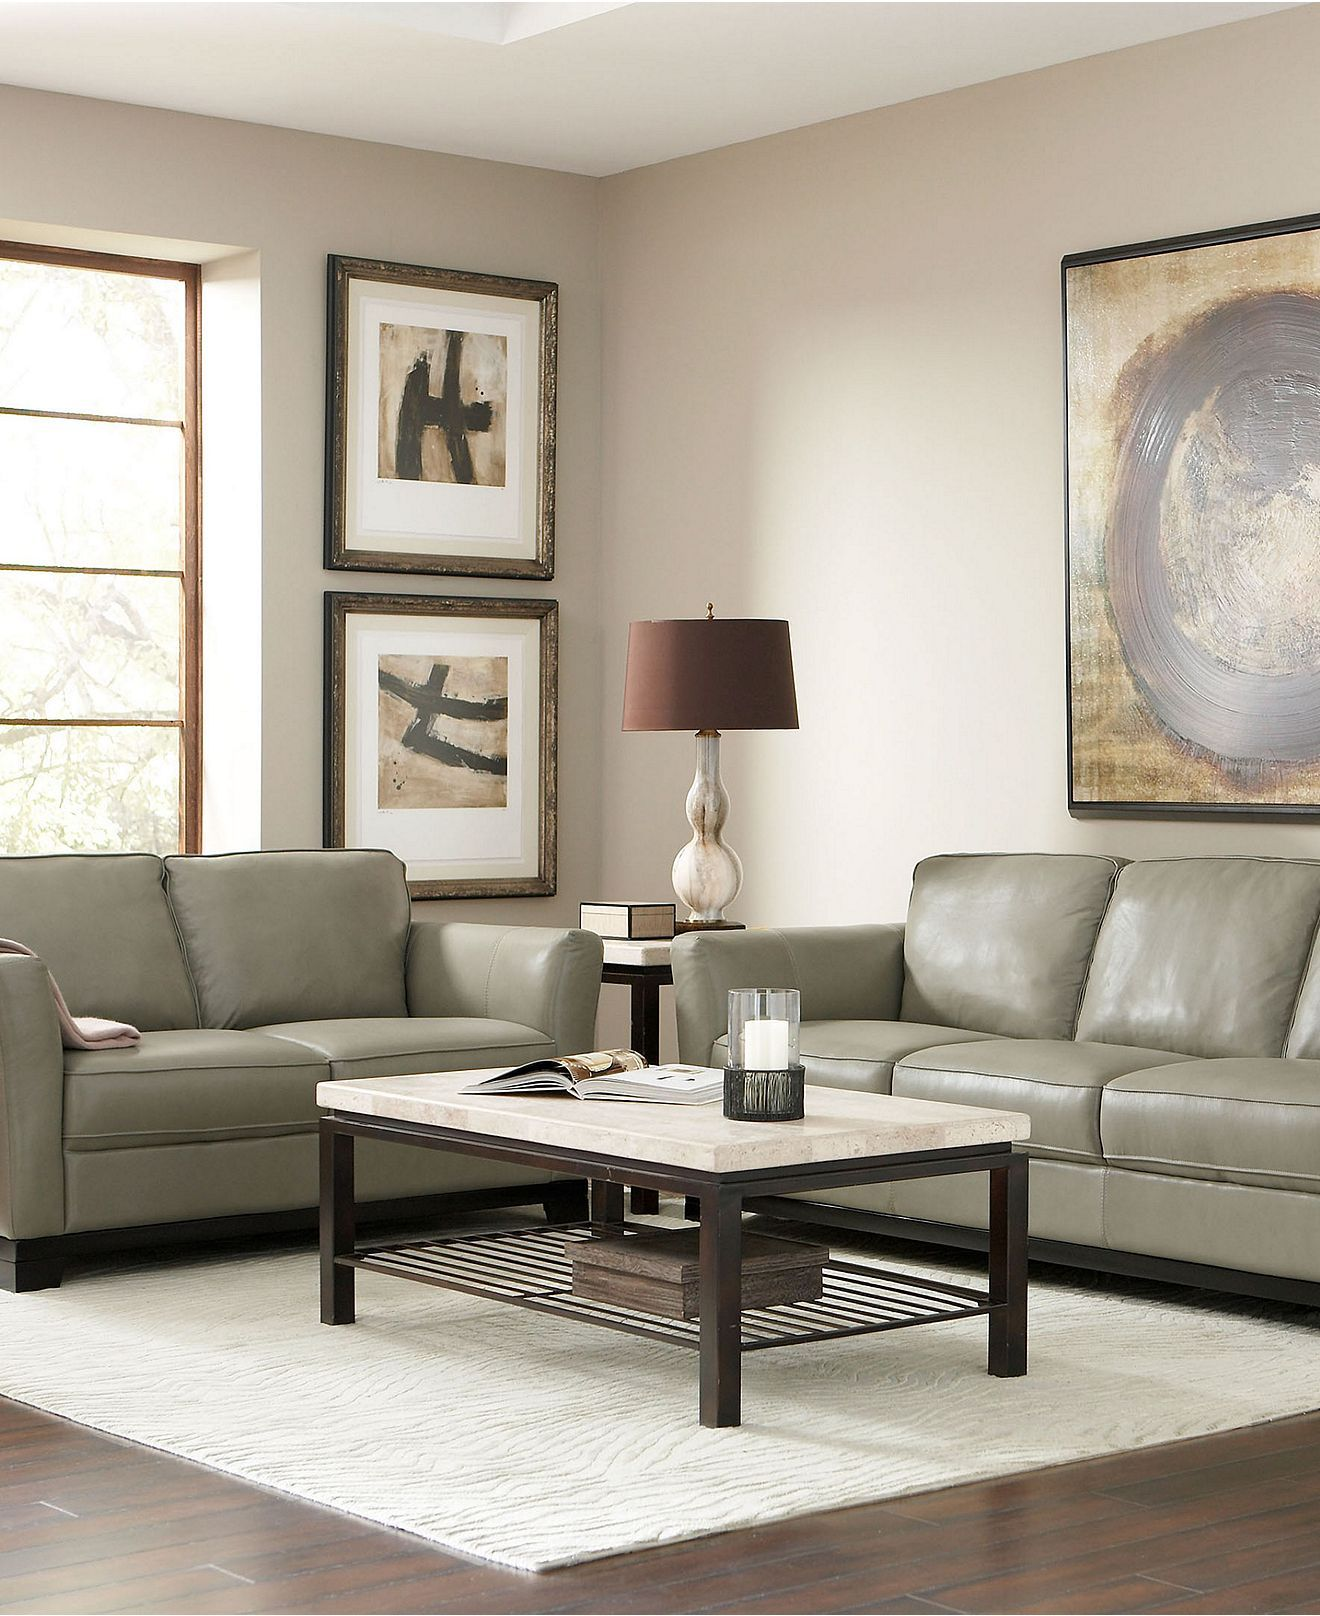 Leather Furniture Traveler Collection: Turin Leather Living Room Furniture Sets & Pieces